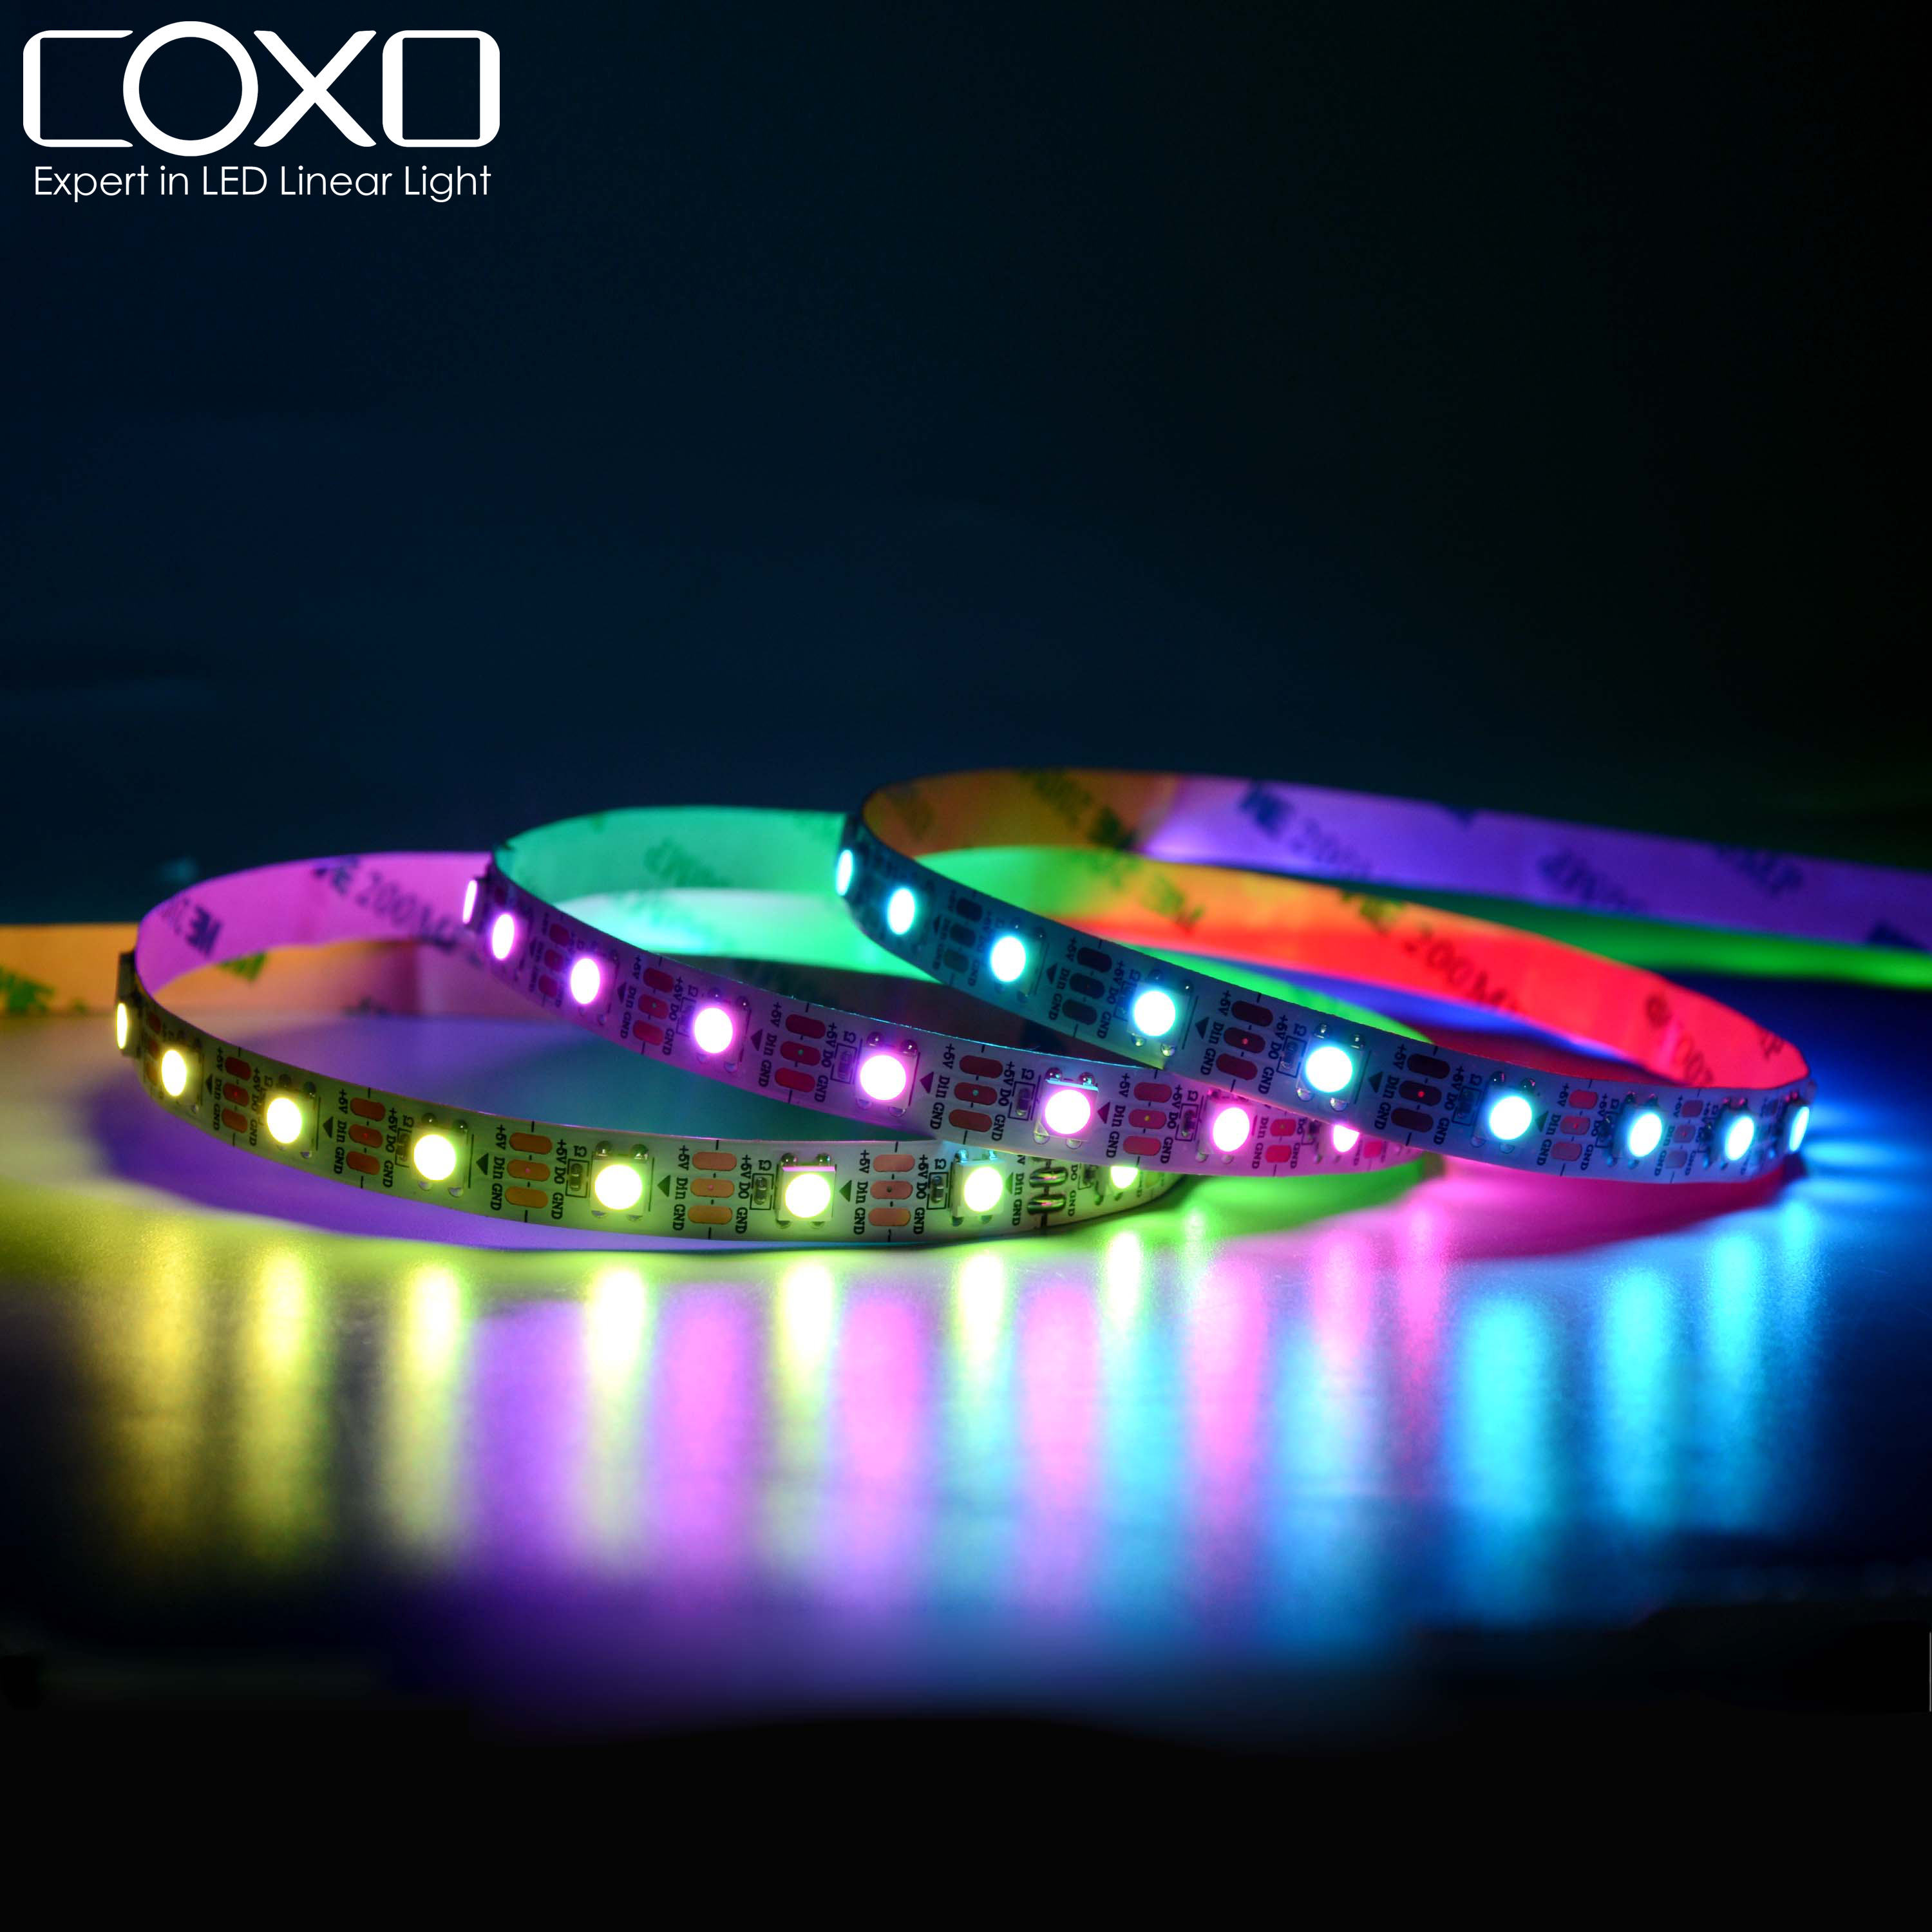 Dream Color 2812b Smart digital addressable 5V Pixel Light 300 ws2812b led strip